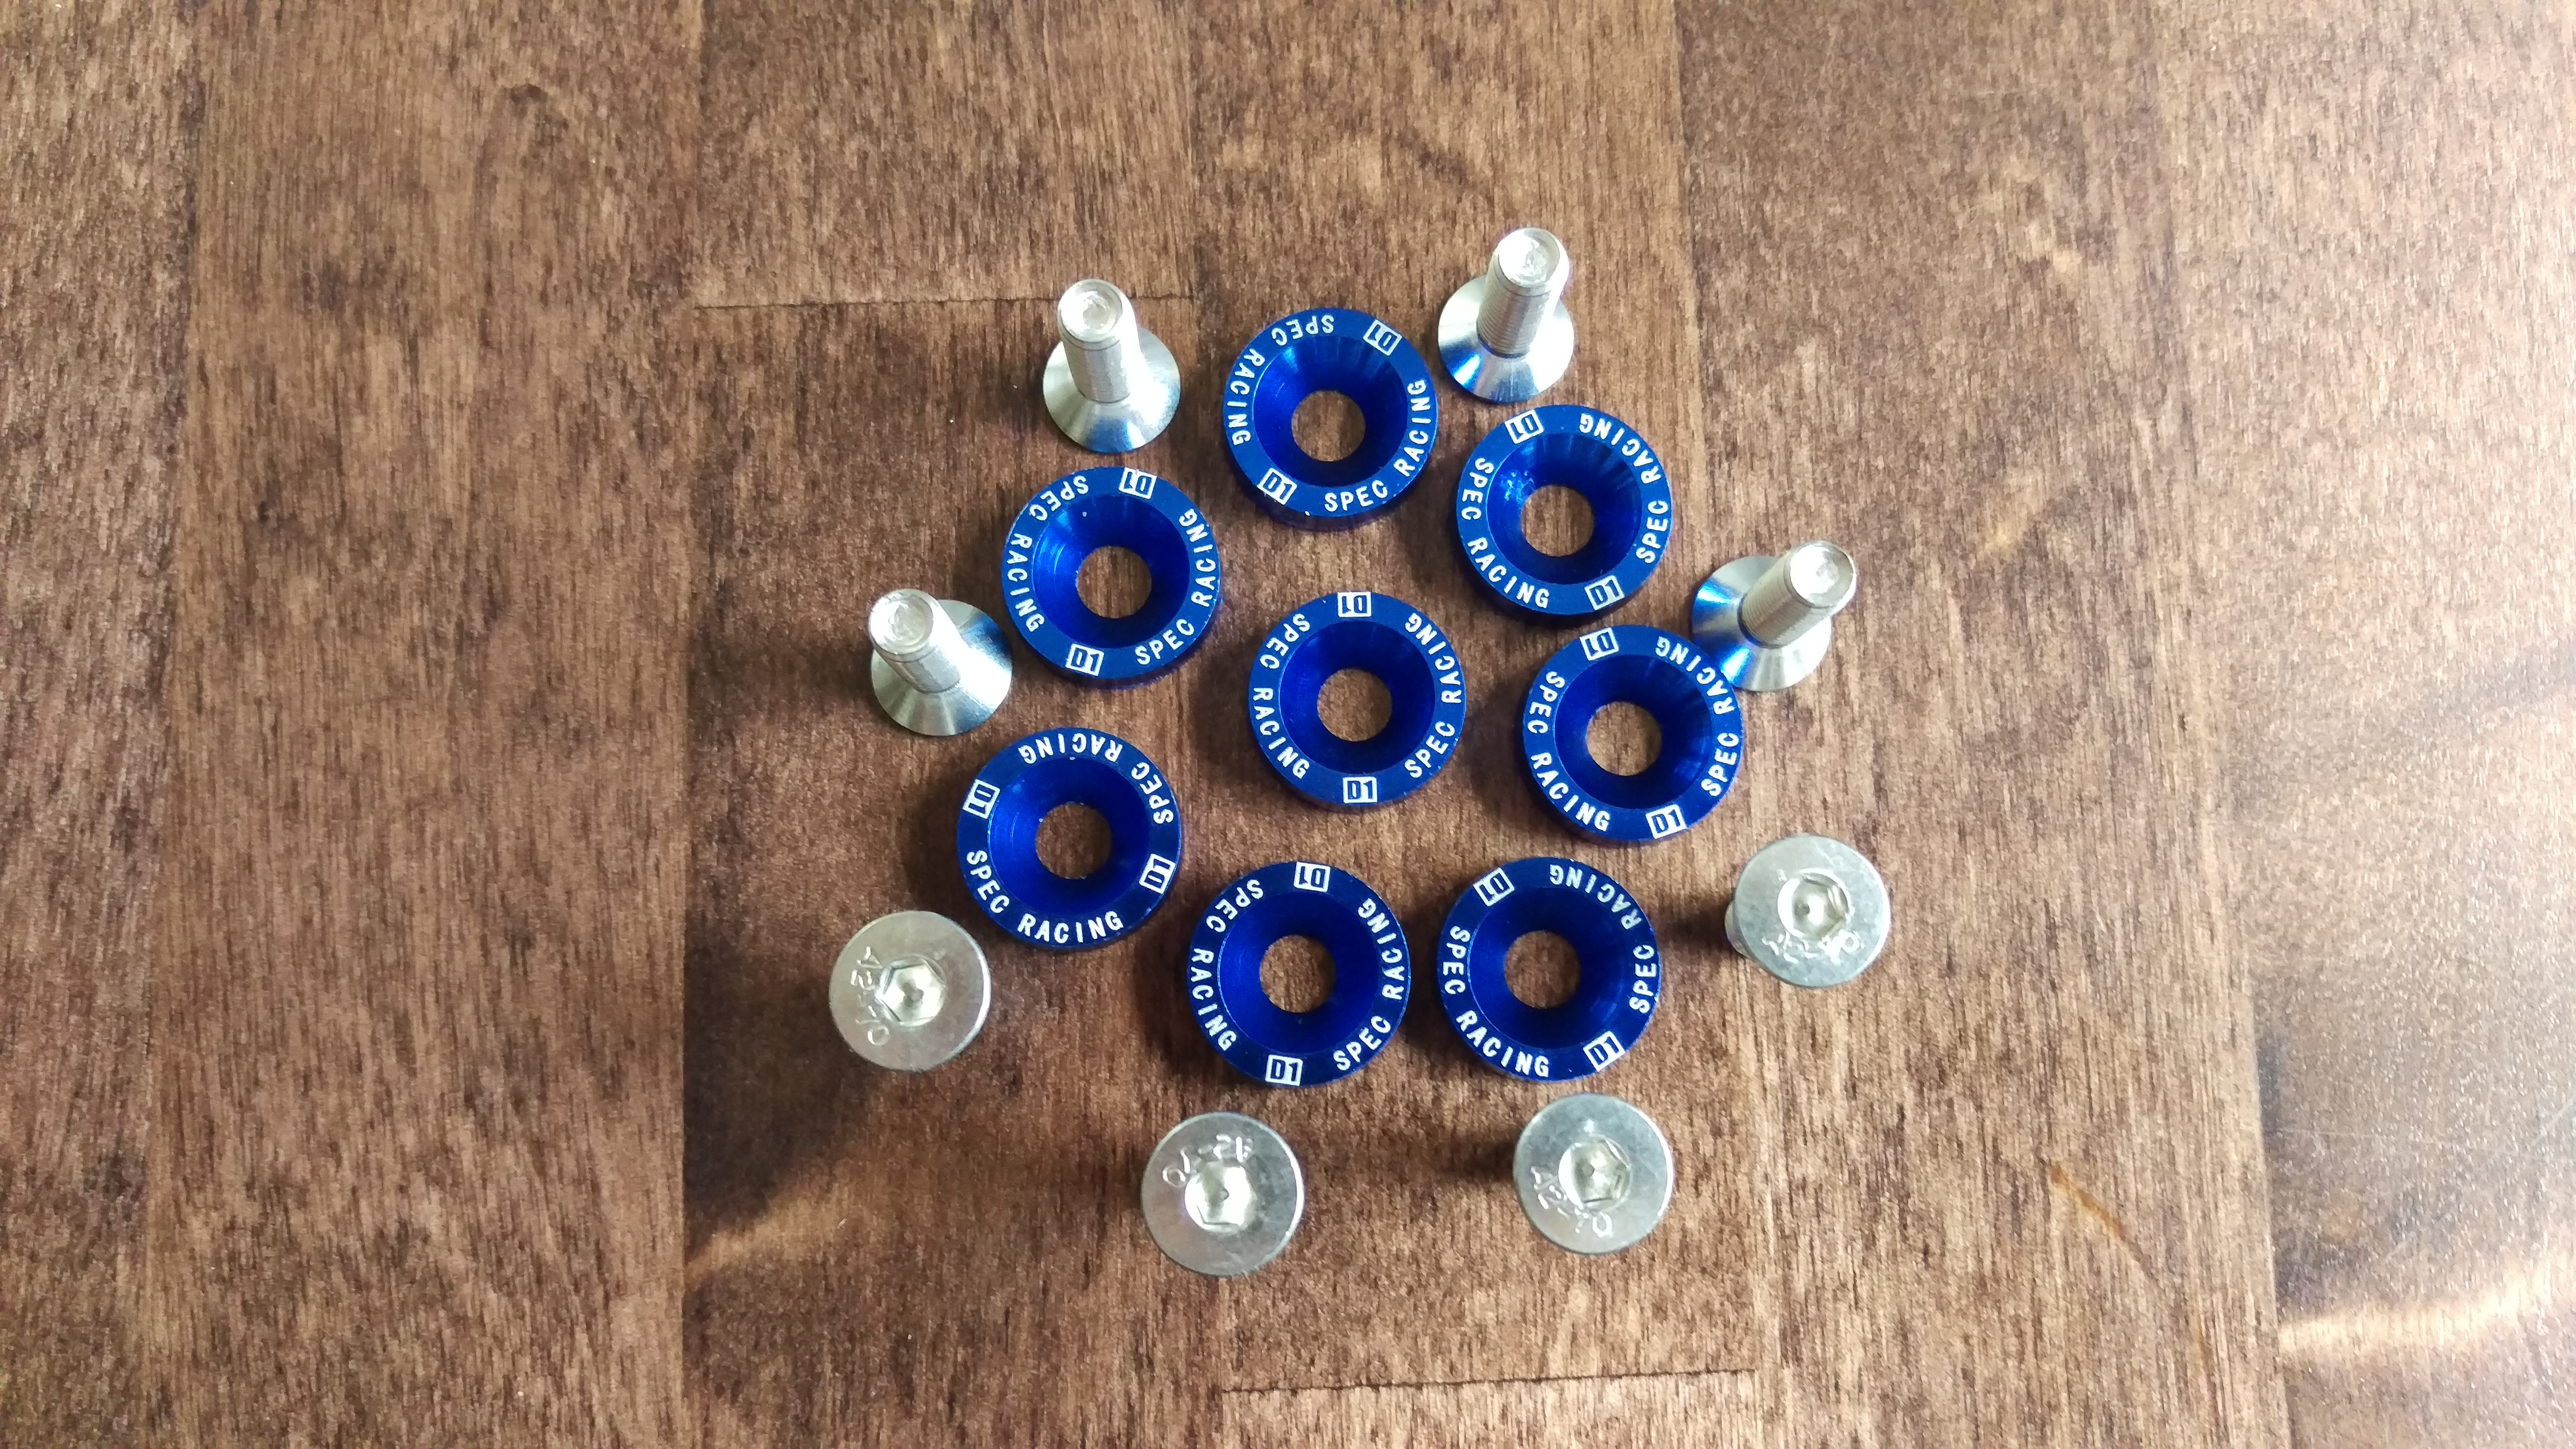 Jdm bolt set Blue